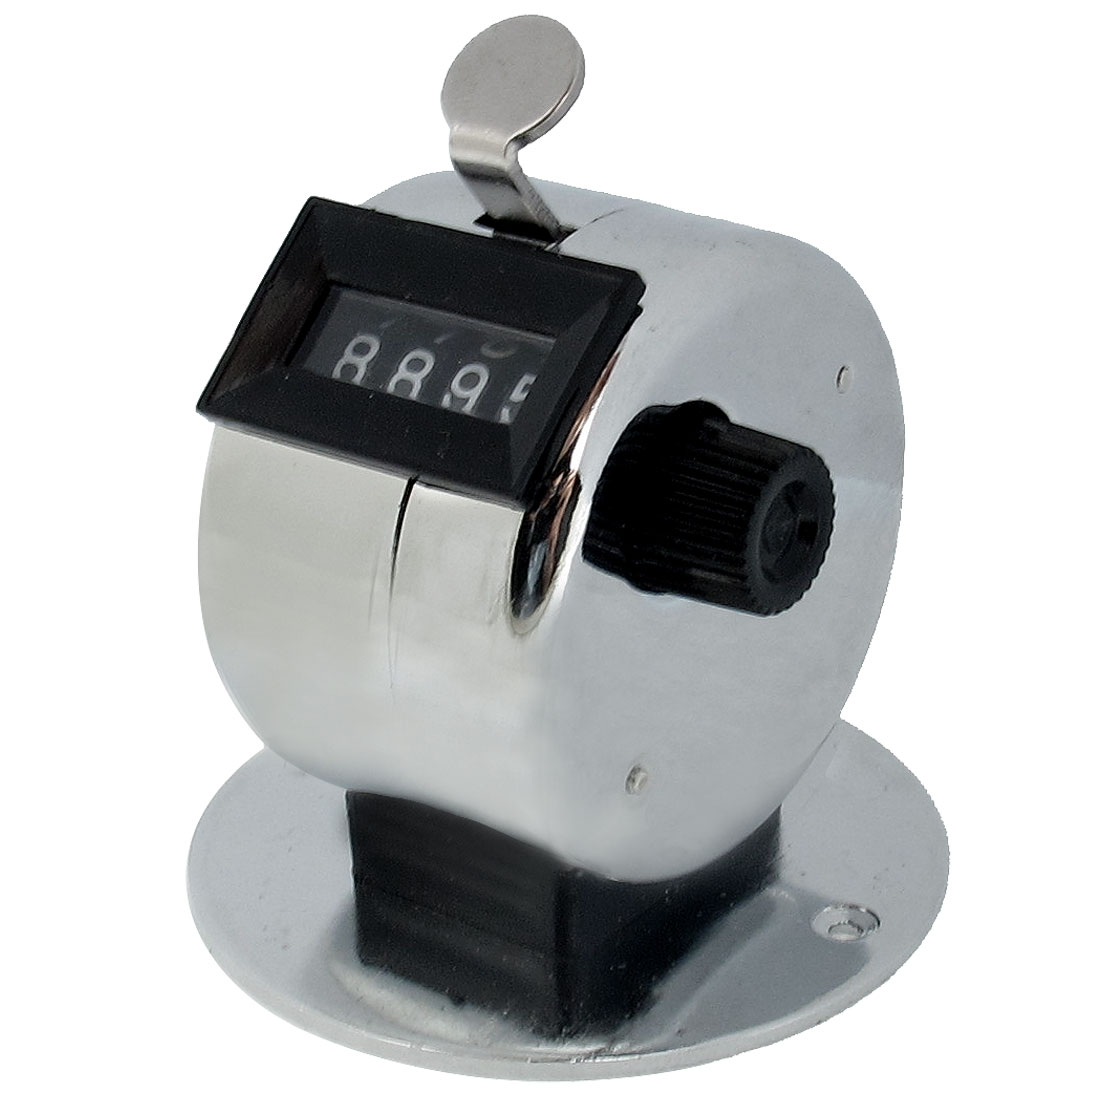 Unique Bargains Unique Bargains Resettable 4 Digits Number Clicker Metal Hand Tally Counter